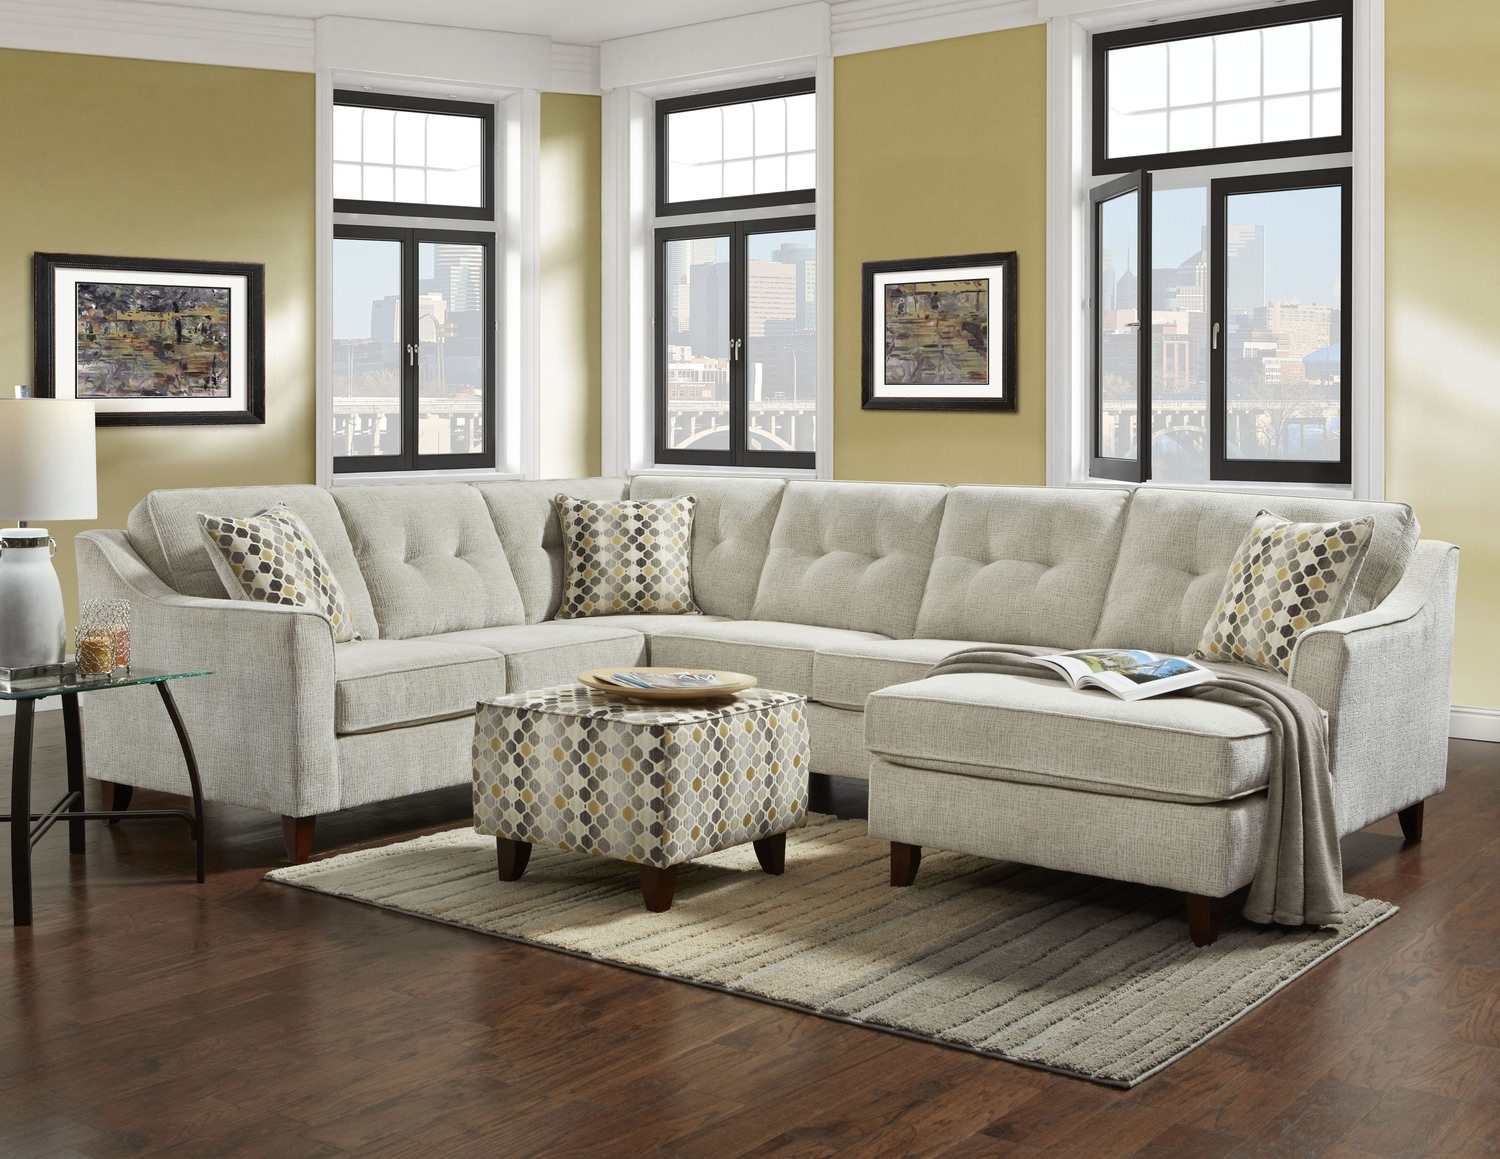 3 Piece Sectional   Locsbyhelenelorasa Pertaining To Malbry Point 3 Piece Sectionals With Laf Chaise (Photo 15 of 30)